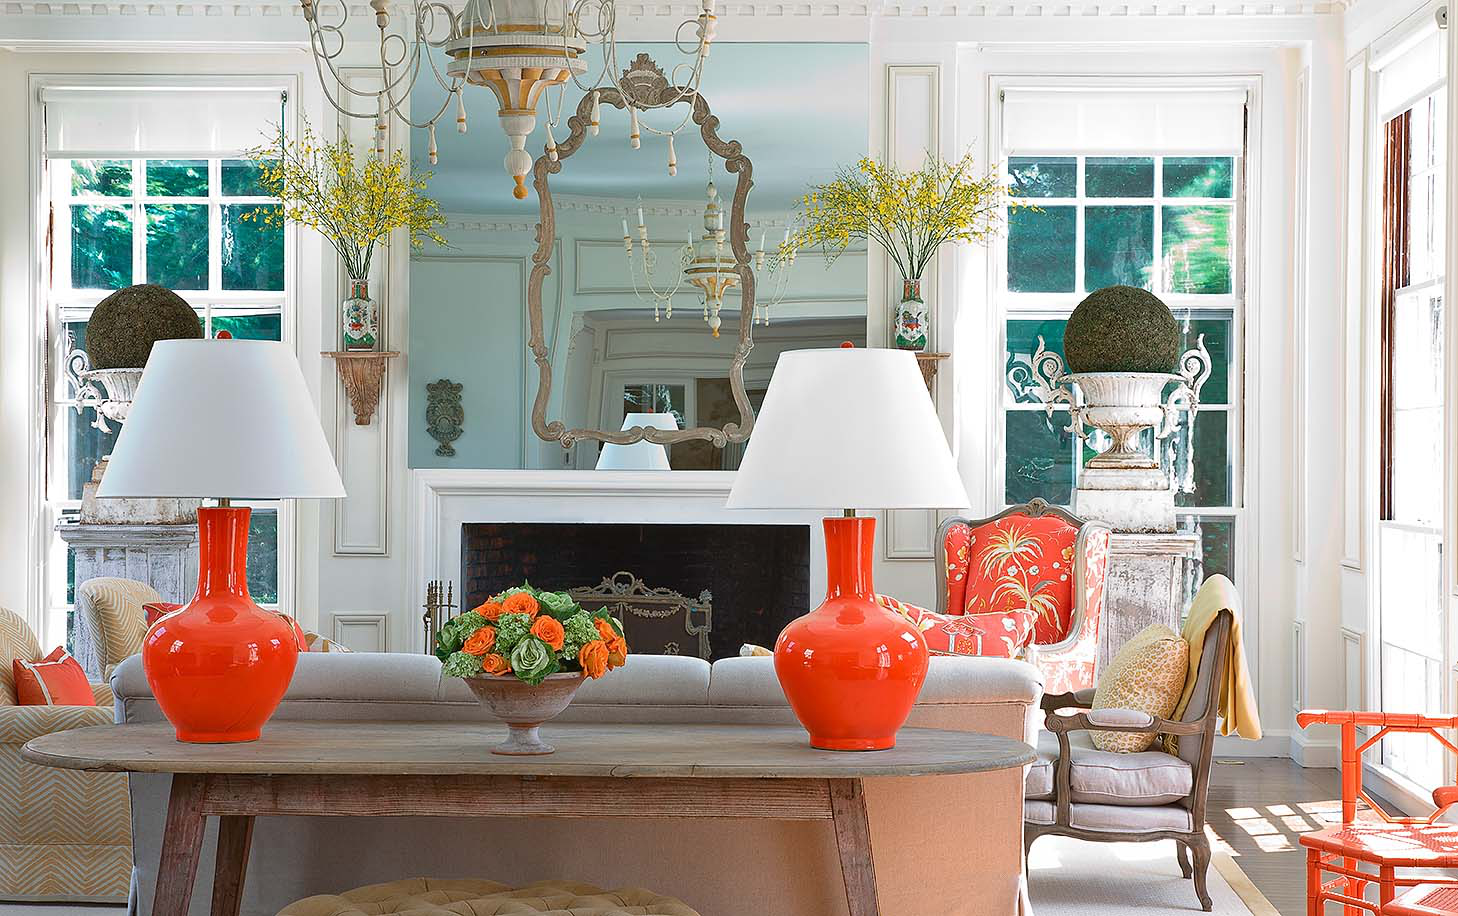 Interior design by Honey Collins Interiors